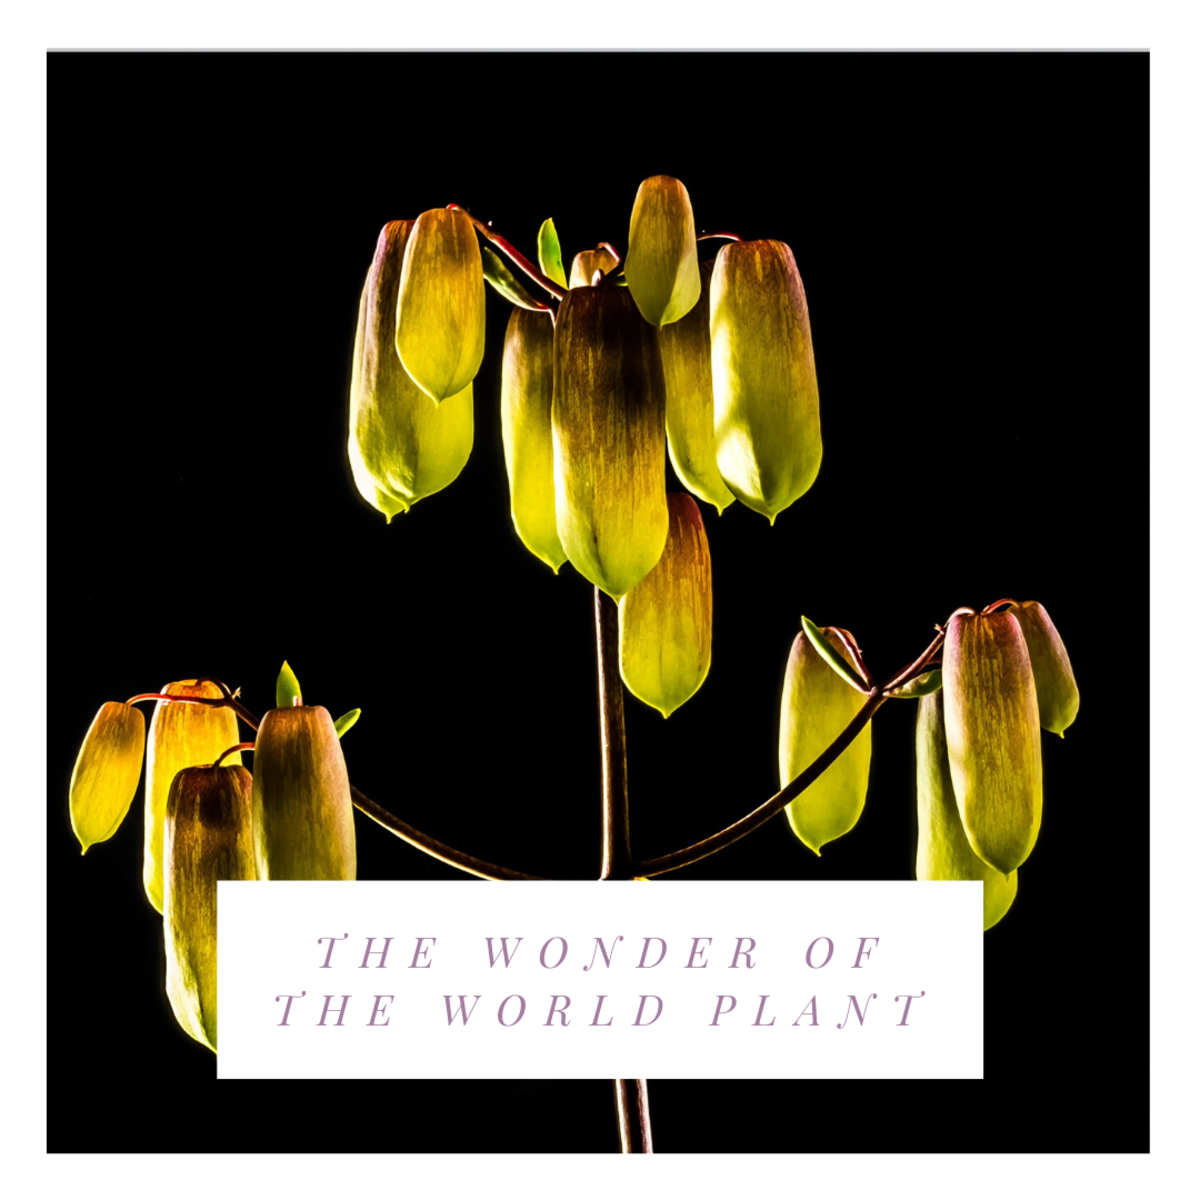 The Wonder of the World Plant